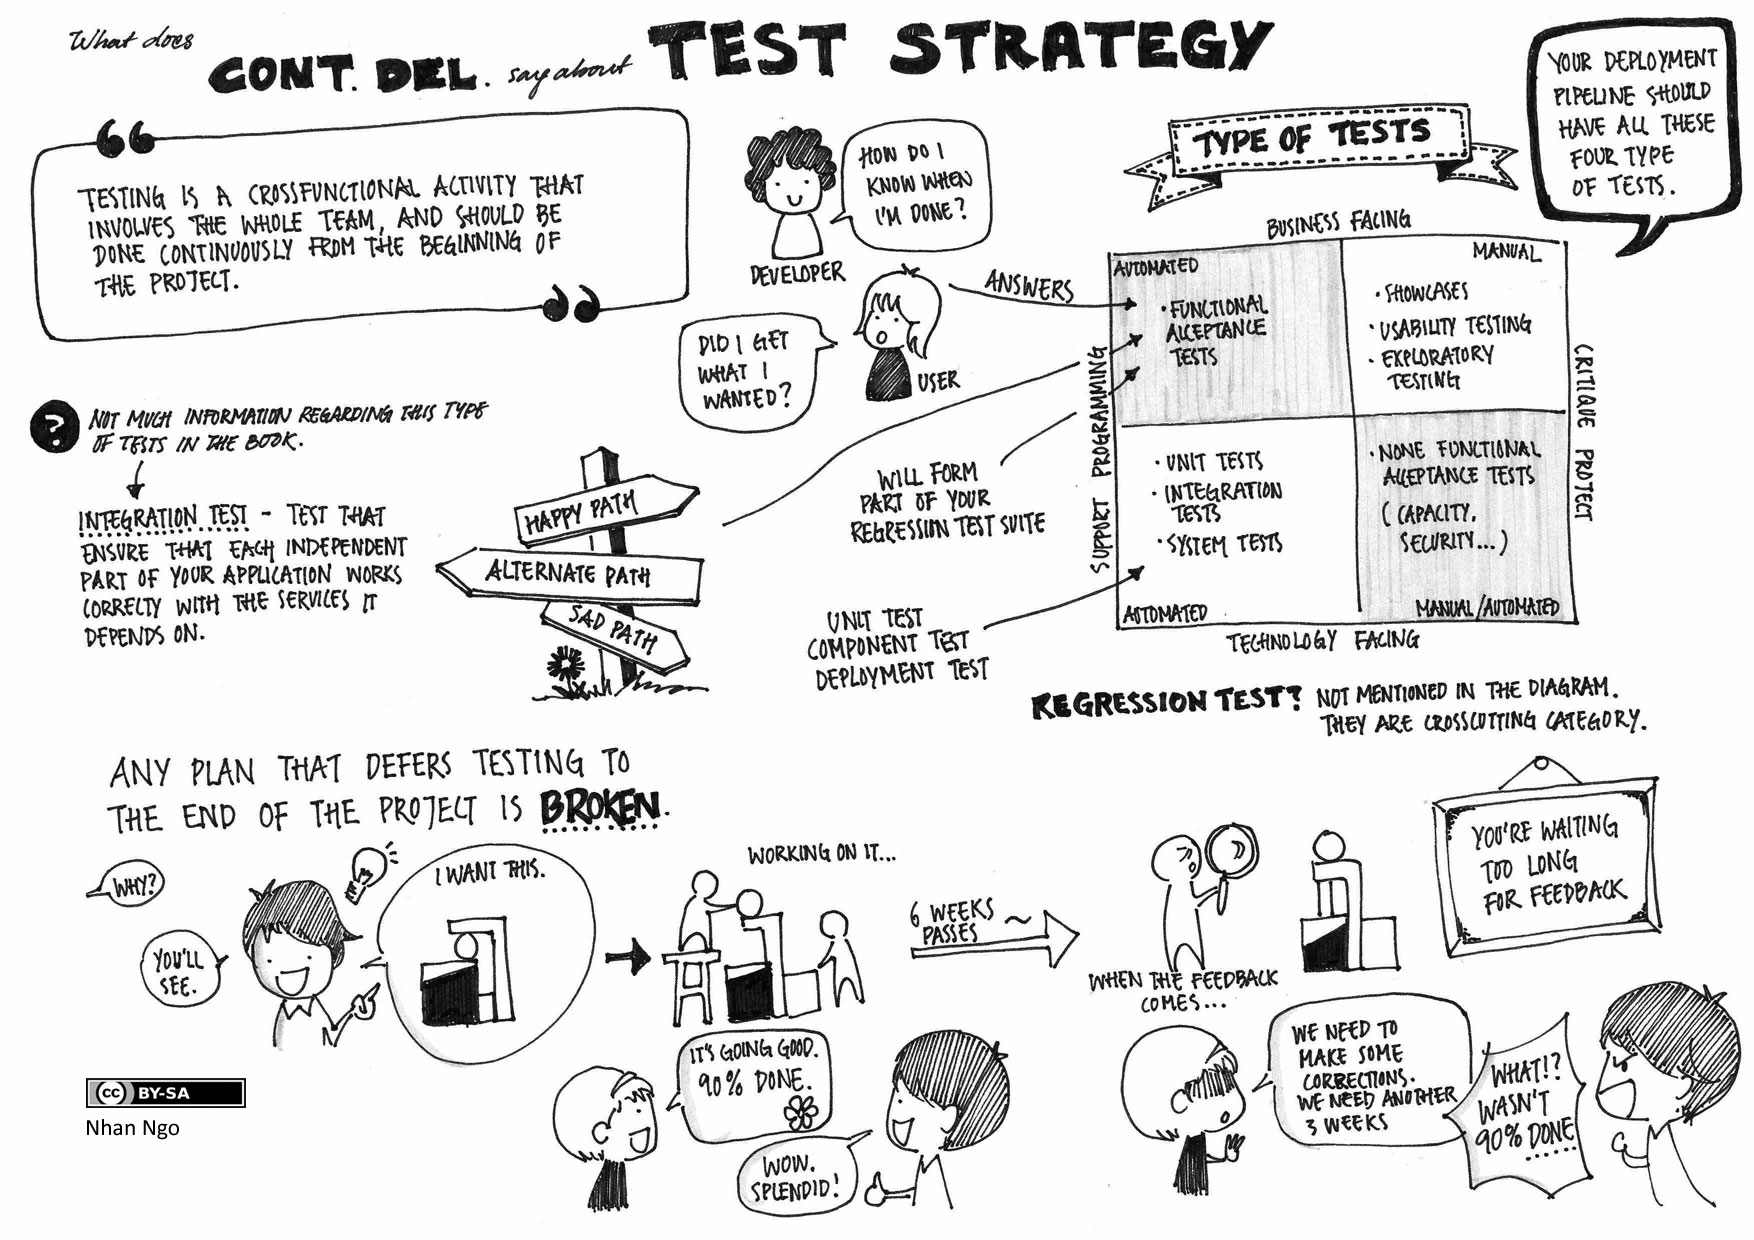 Continuous Delivery Test Strategy